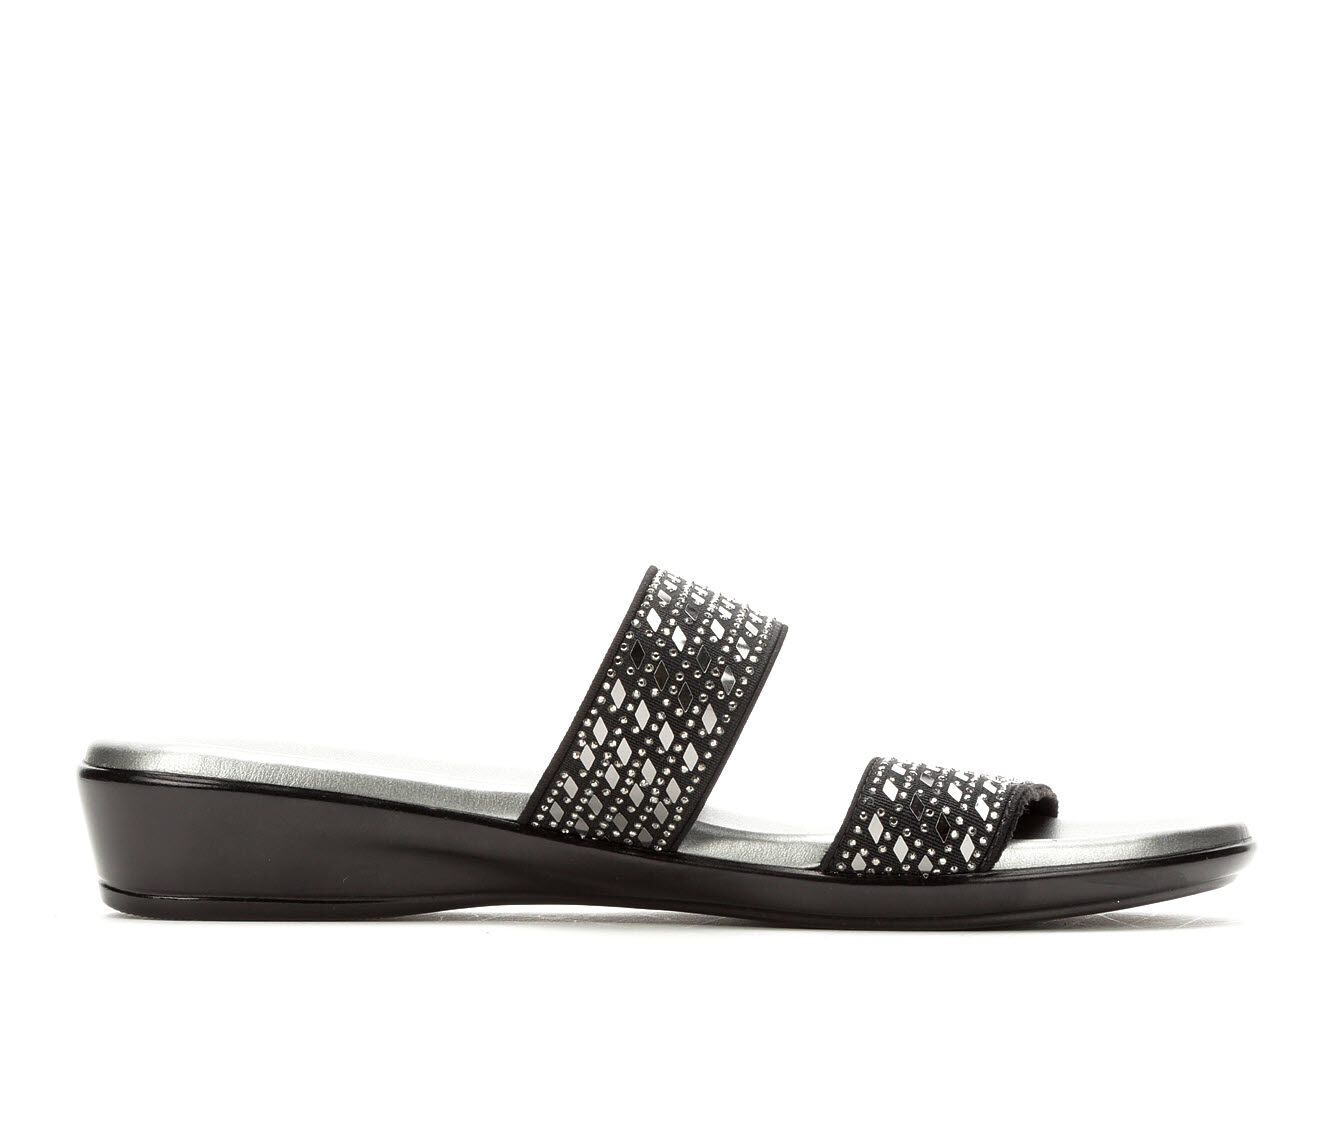 Women's Italian Shoemakers Clay Sandals Black/Pewter